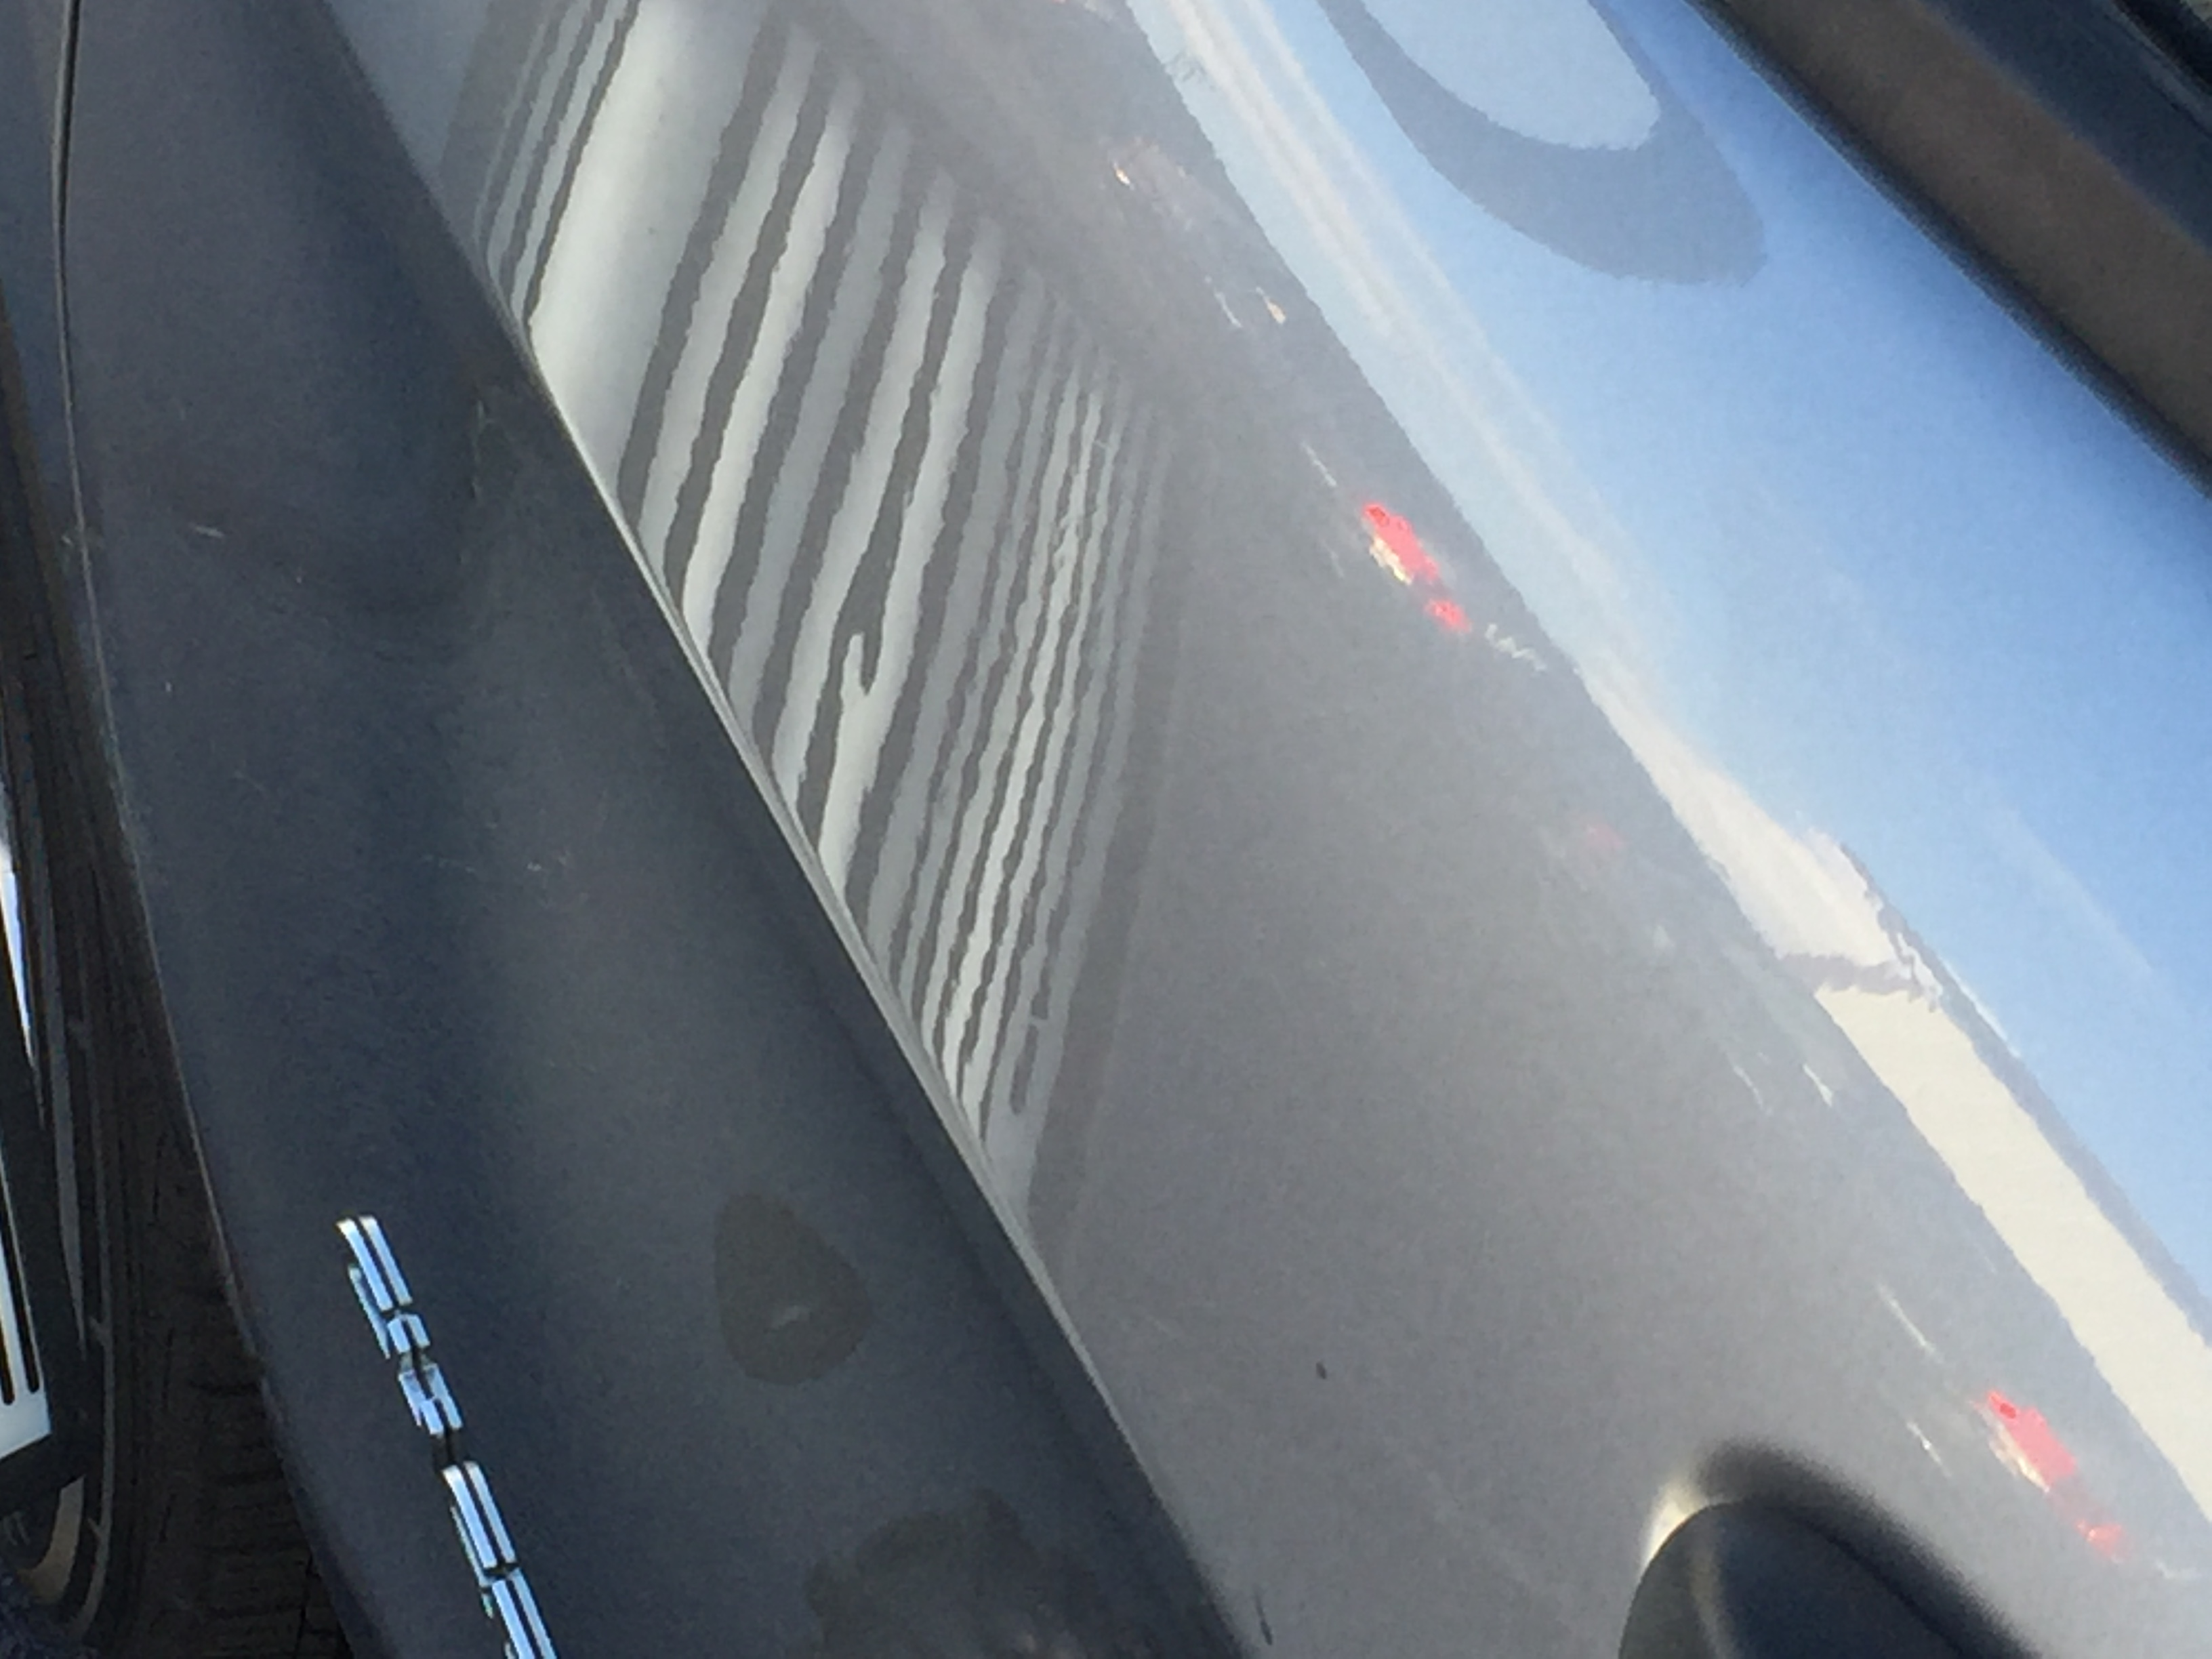 2016 Jeep Cherokee Dent Removal, Springfield, IL http://217dent.com